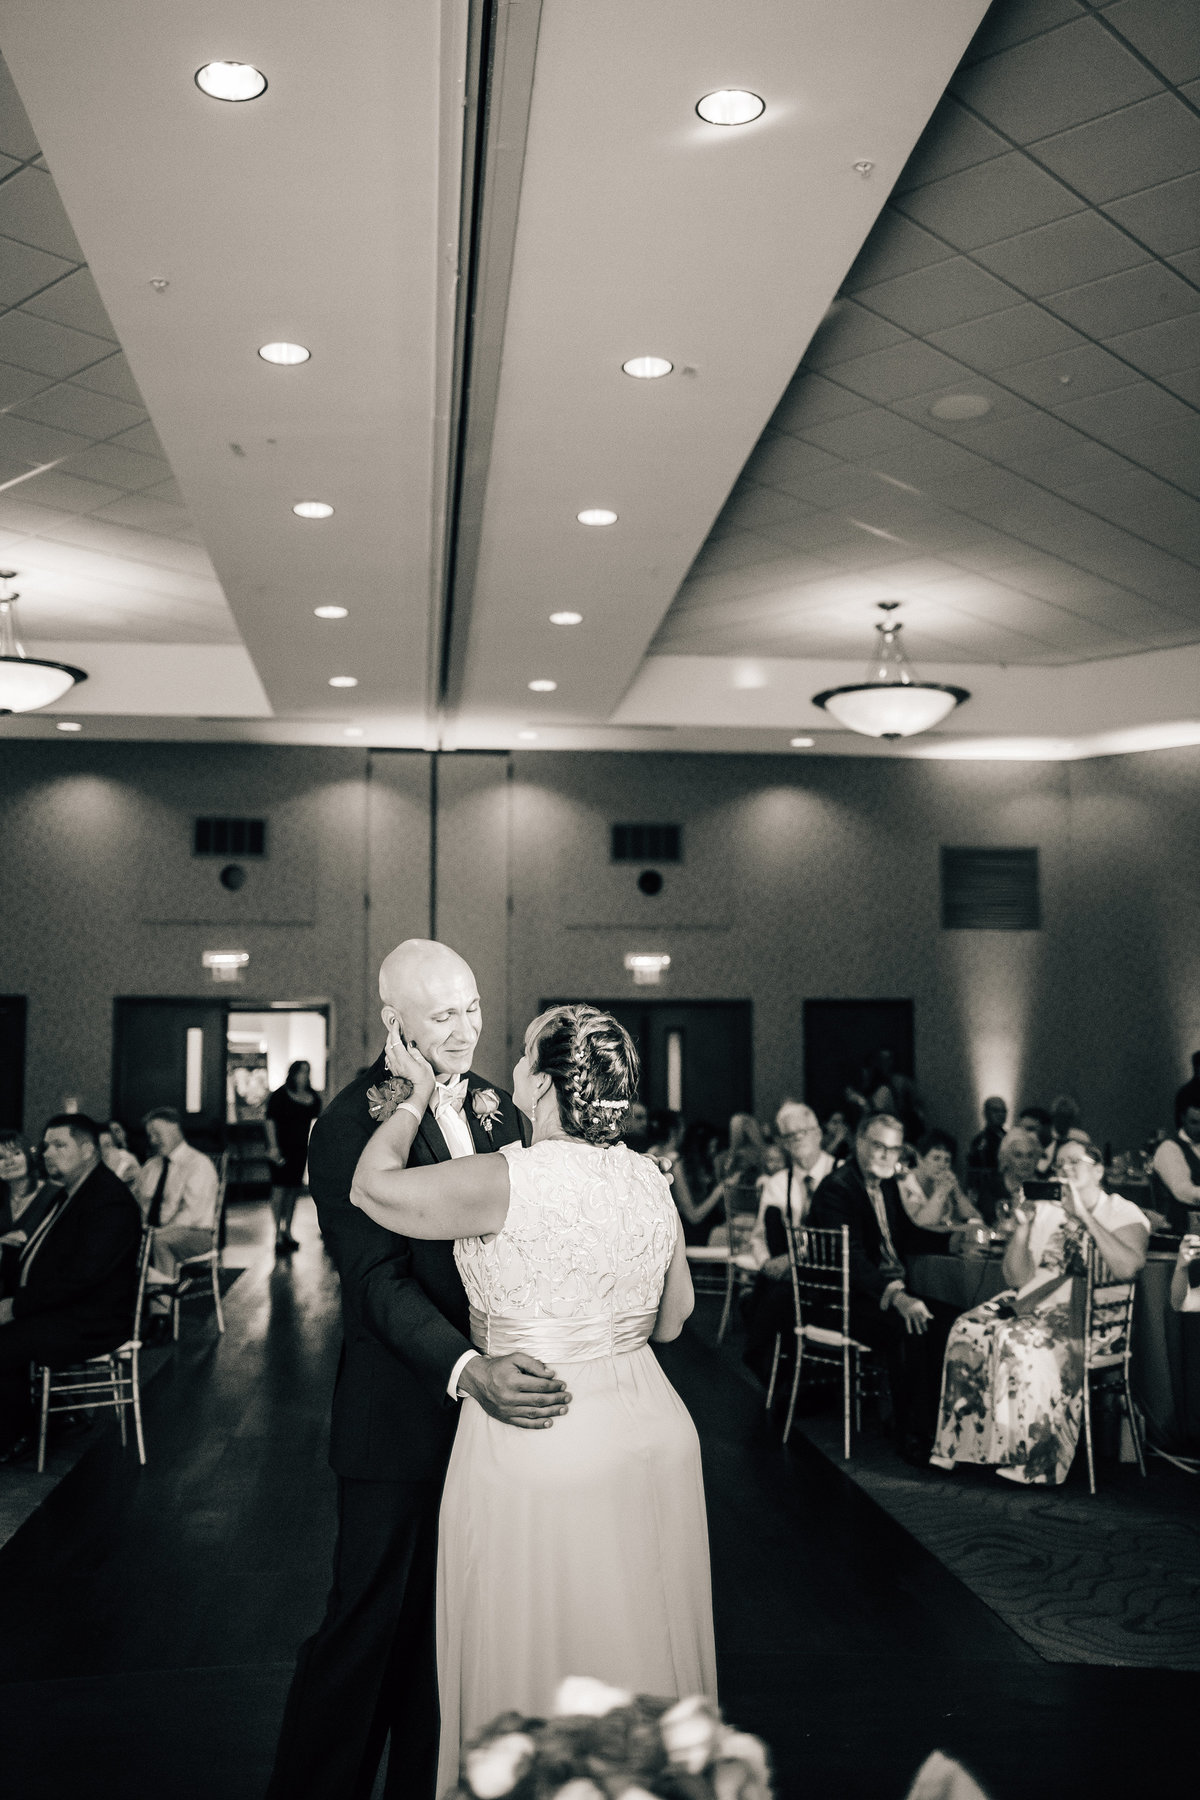 Kimberly_Hoyle_Photography_Milam_The_Back_Center_Melbourne_Wedding-80